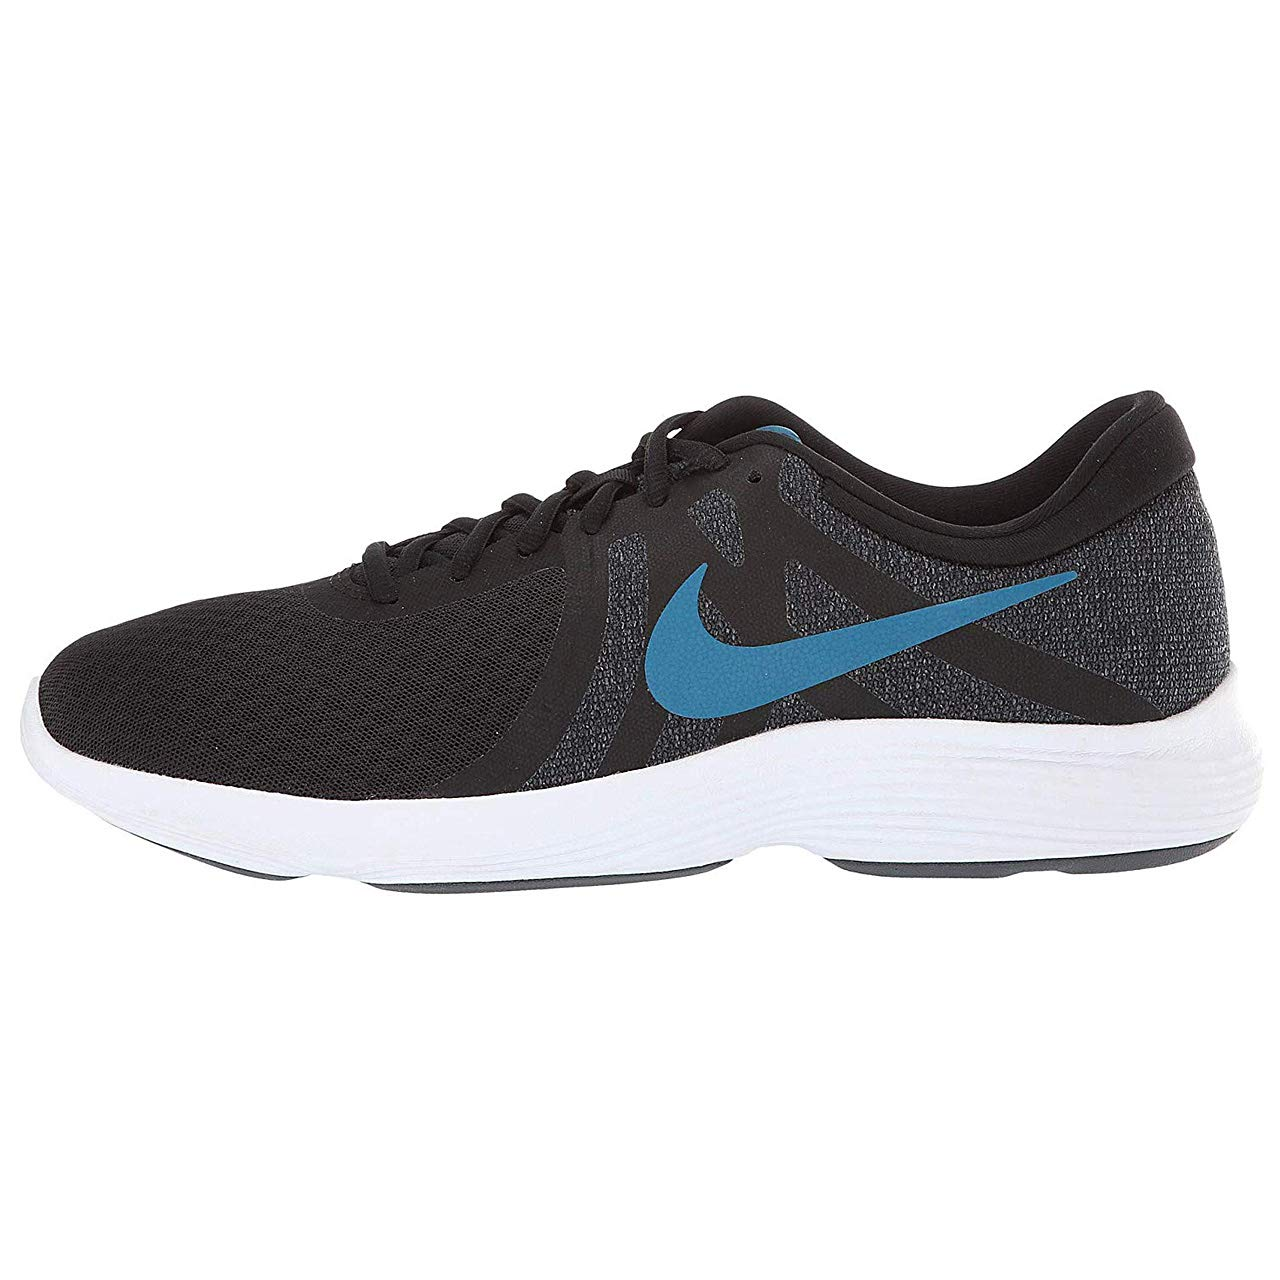 c6e2ec93a763 Galleon - Nike Men s Revolution 4 Running Shoe